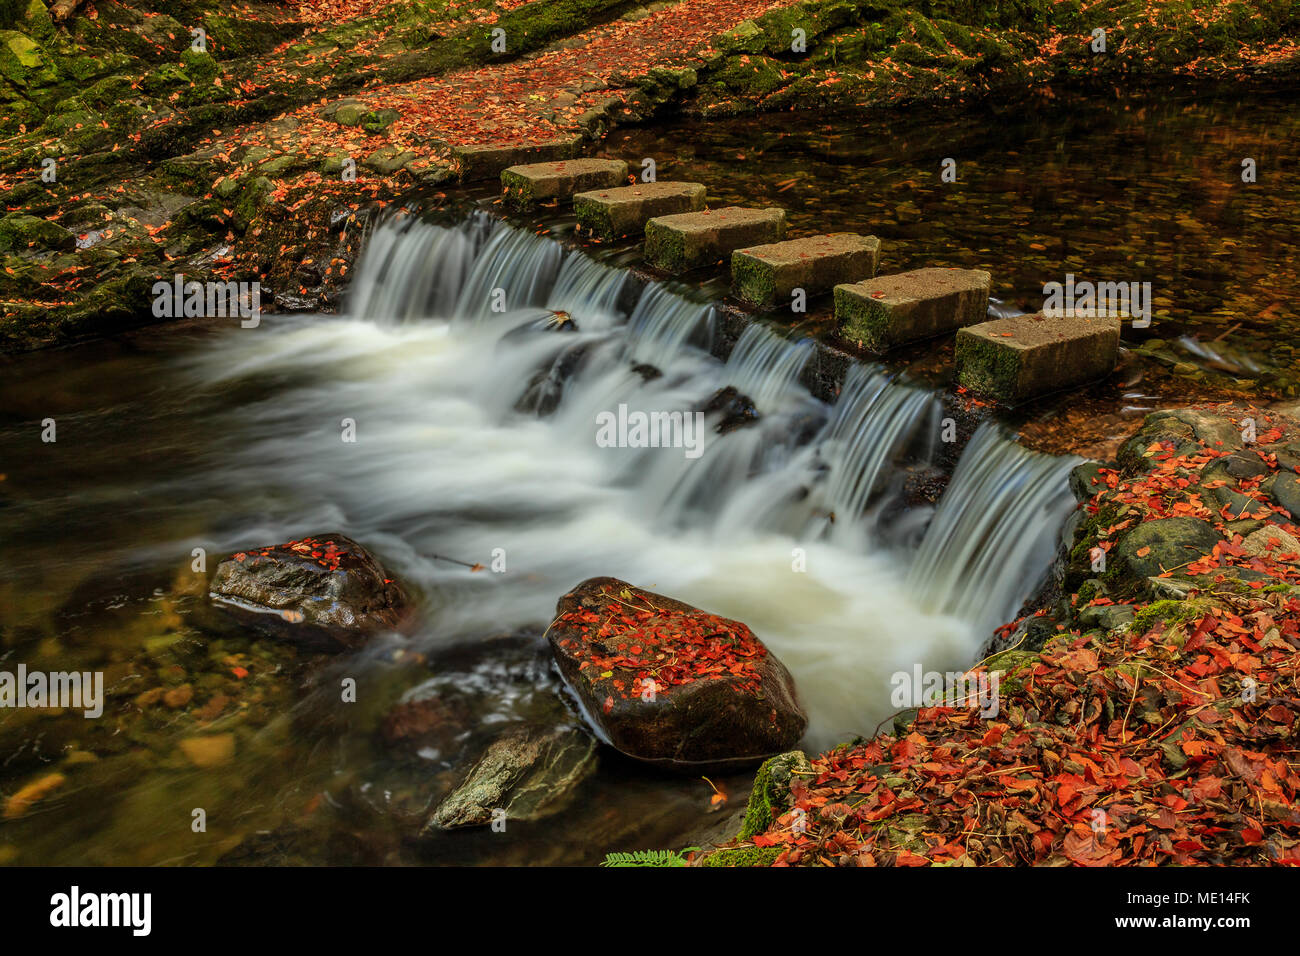 The well-known stepping stones across the Shimna River in Tollymore Forest Park, County Down, Ireland, in Autumn. - Stock Image